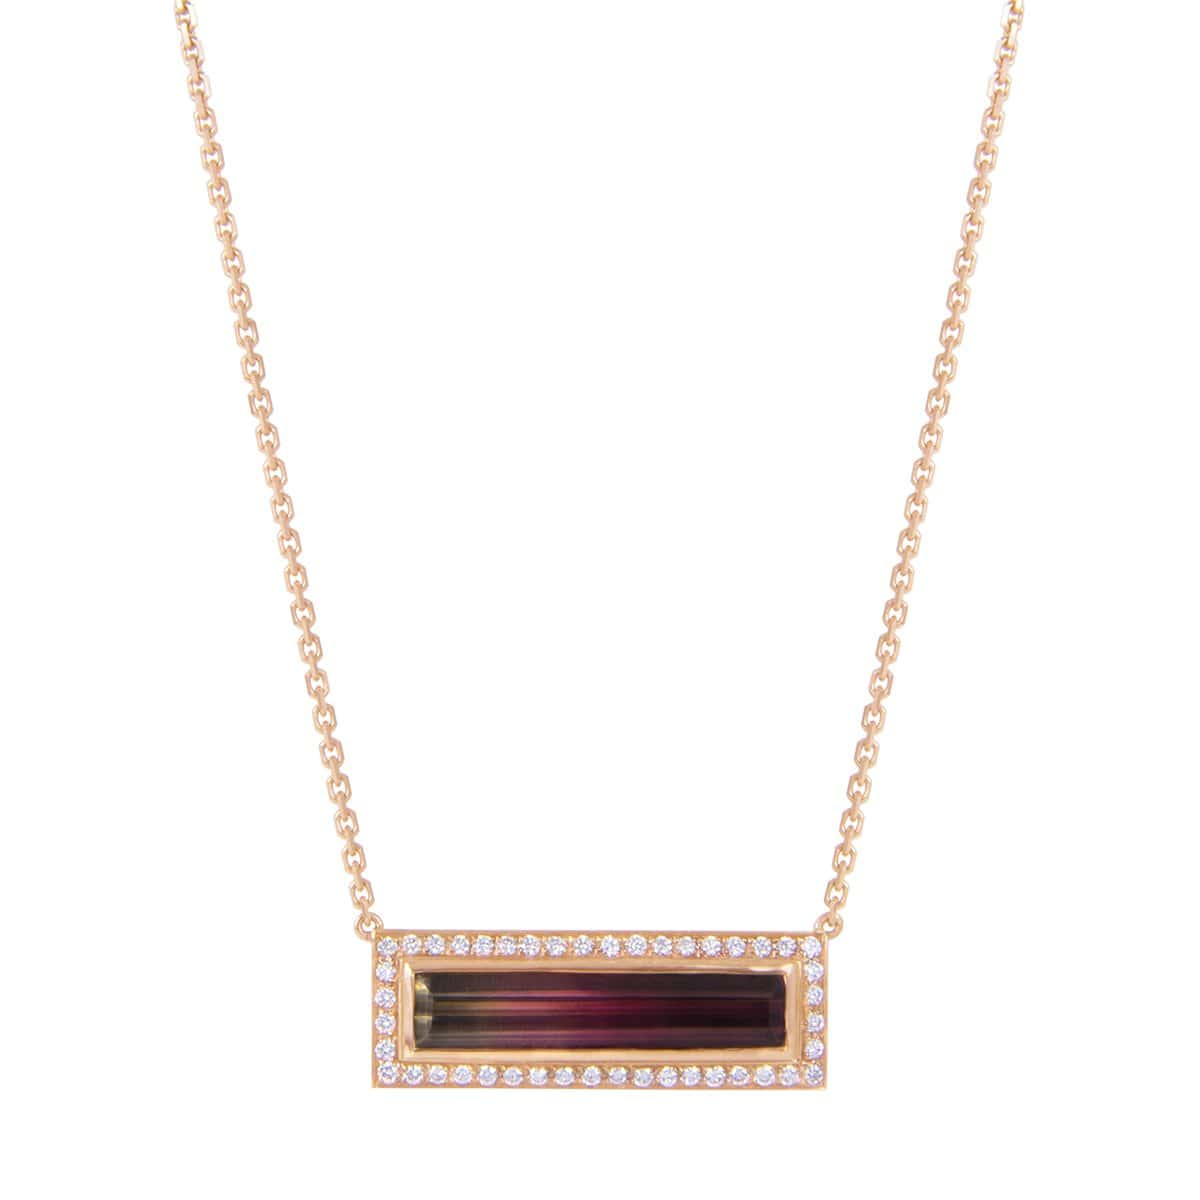 Watermelon Tourmaline and Diamond Horizontal Bar Necklace - Curated Los Angeles